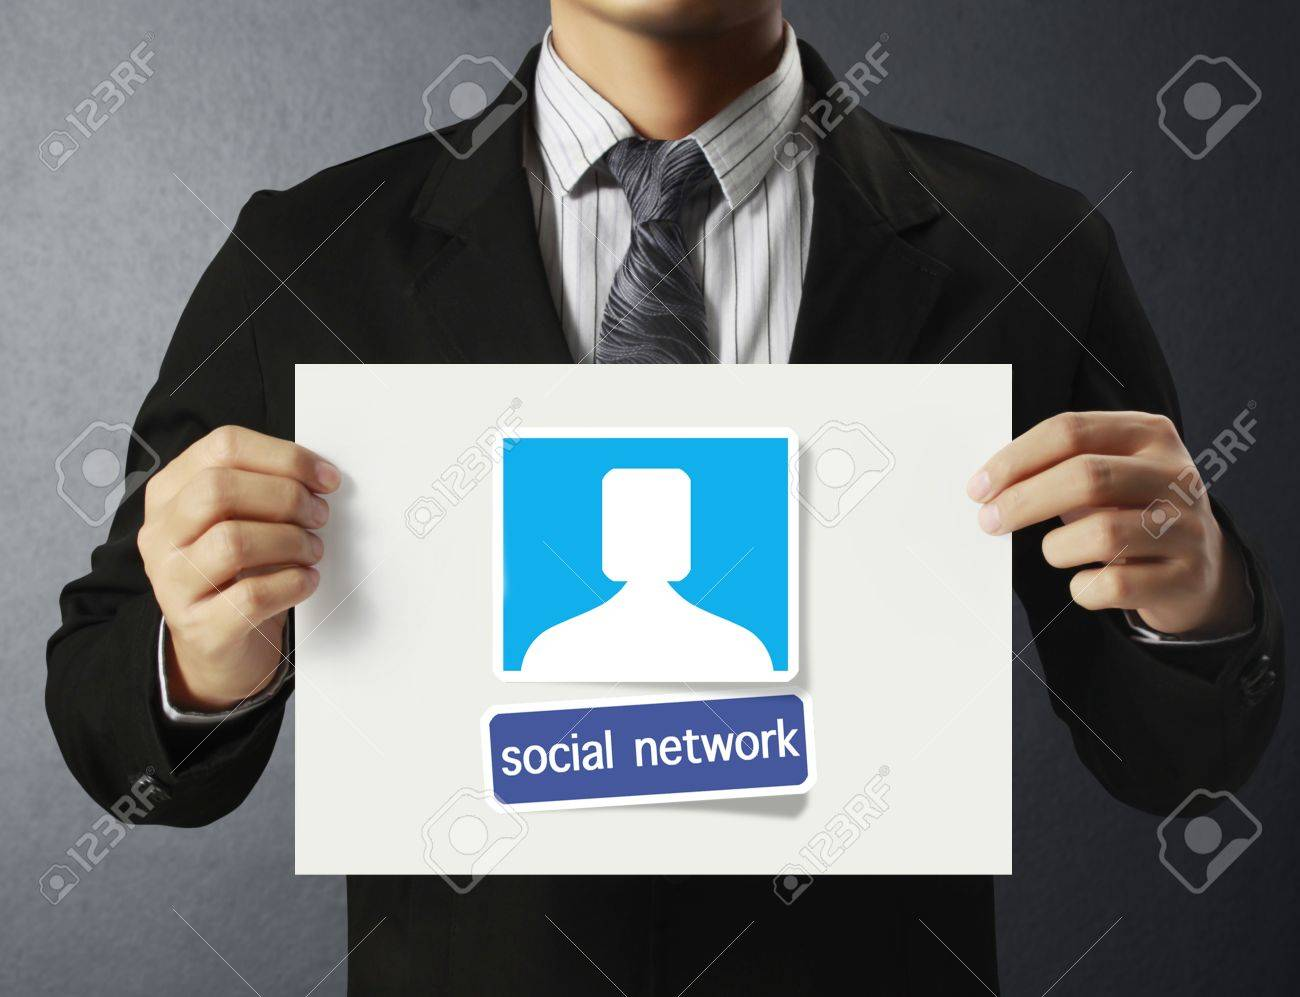 business man handing social network business card over stock photo business man handing social network business card over stock photo 18537600